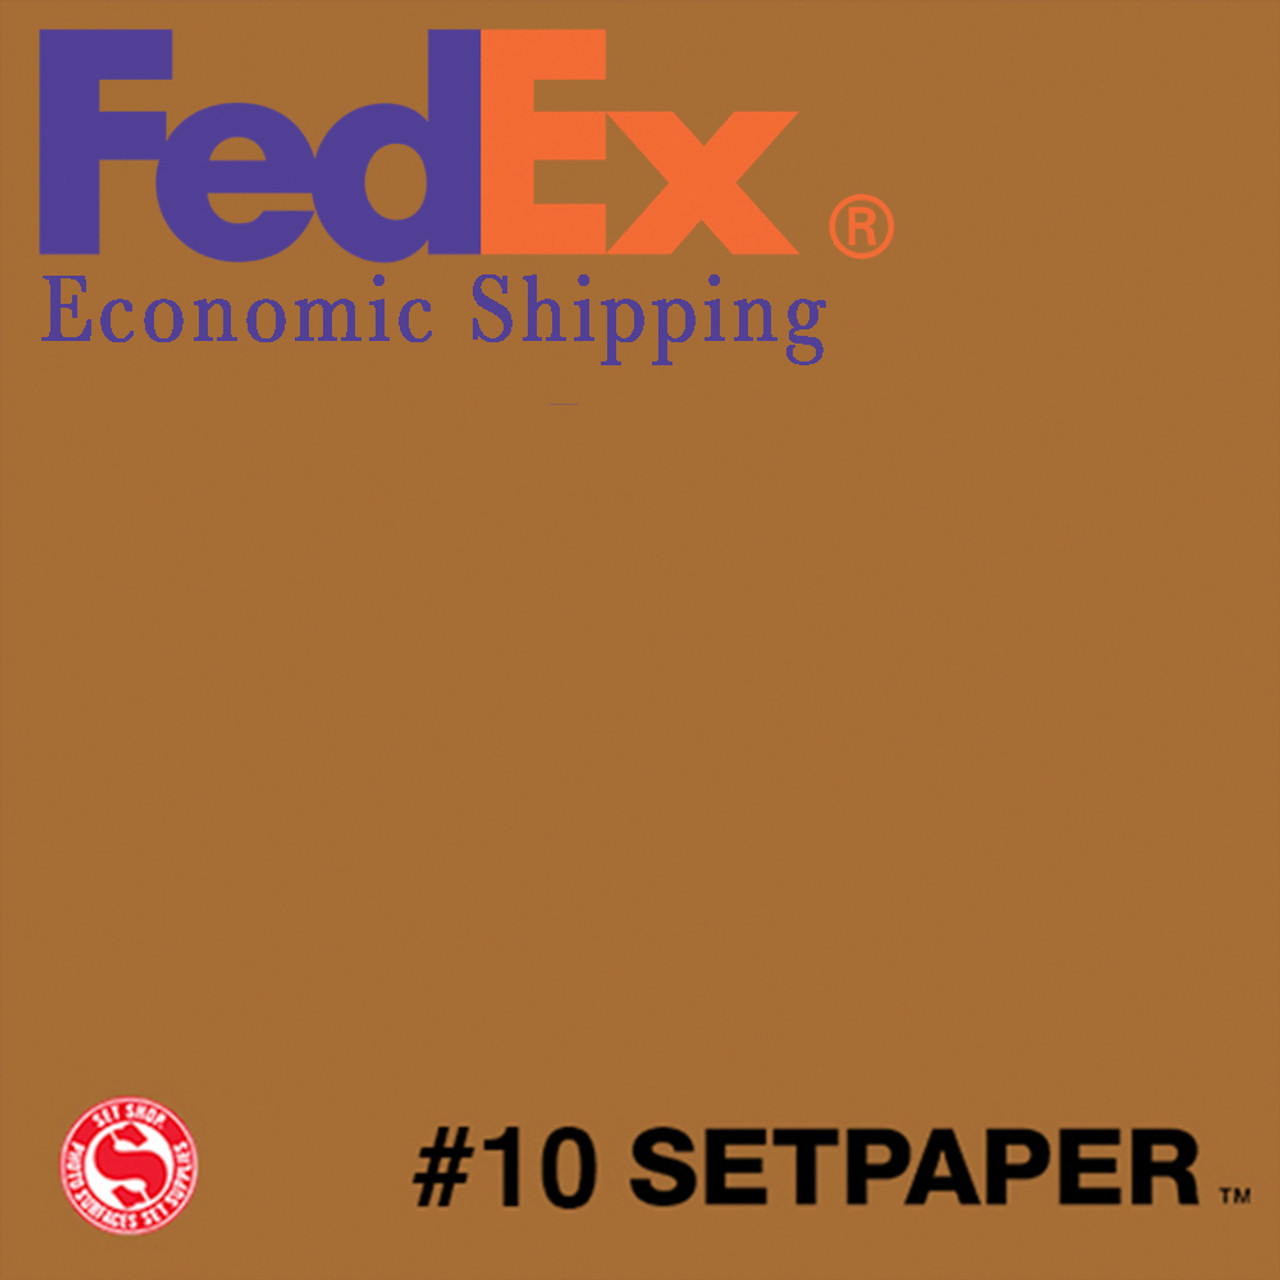 "(ECONOMIC SHIPPING) SETPAPER - BURNT UMBER 48"" x 36' (1.2 x 11m)"